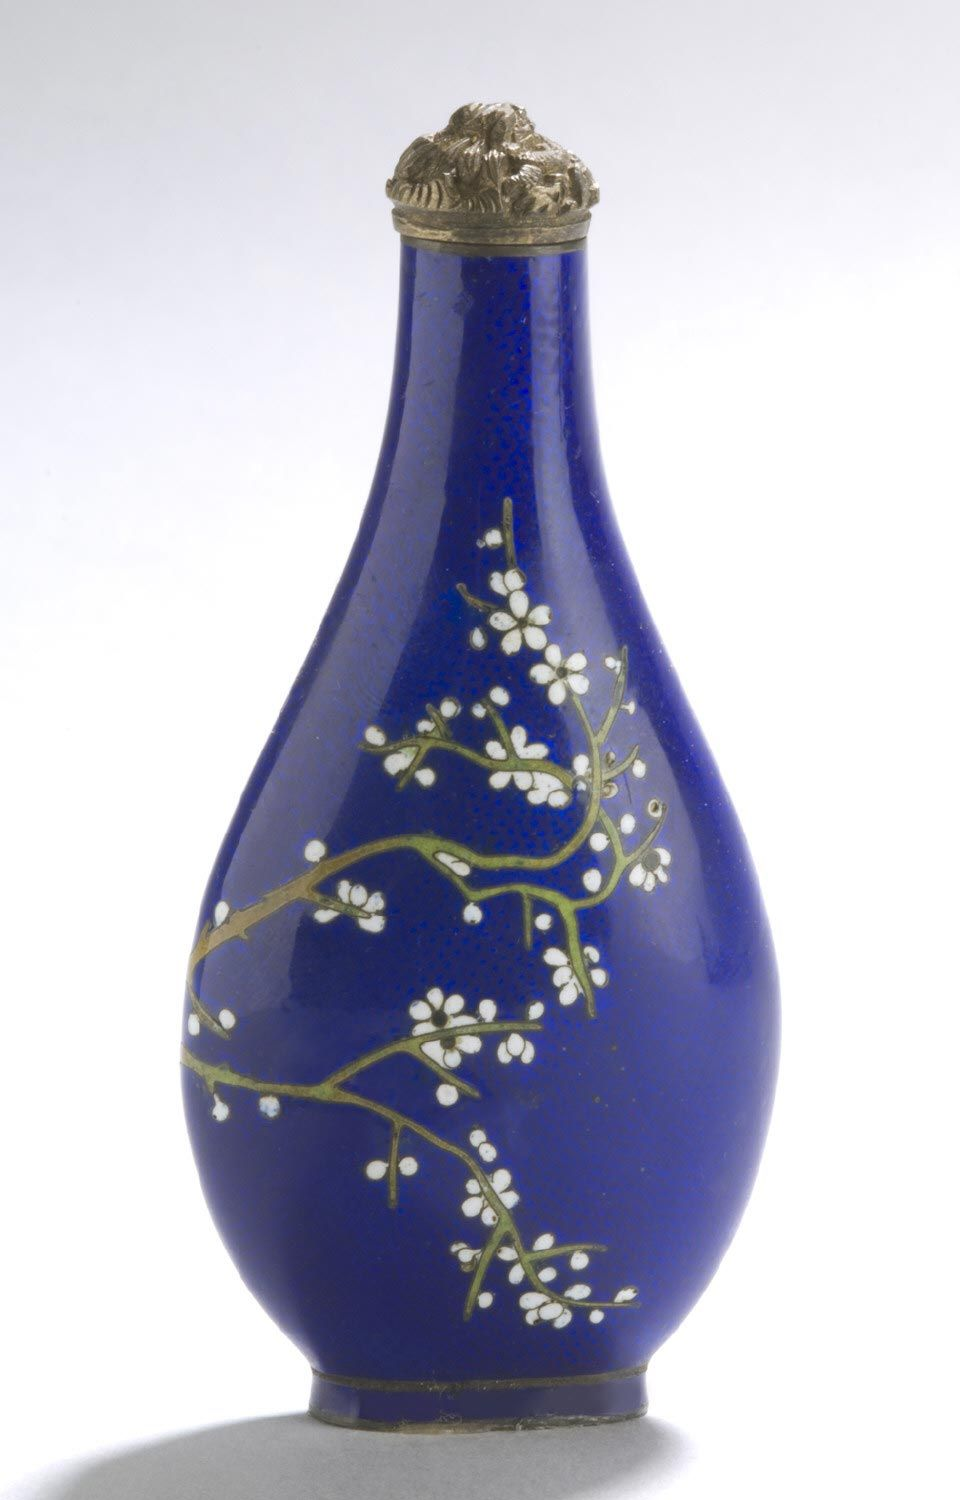 Snuff Bottle and Stopper White Cherry Blossoms Artist/maker unknown, Chinese Geography: Made in China, Asia Period: Qing Dynasty (1644-1911) Date: 1796-1850 Medium: Opaque cobalt blue glass with enamel decoration; gilded brass stopper; ivory spoon